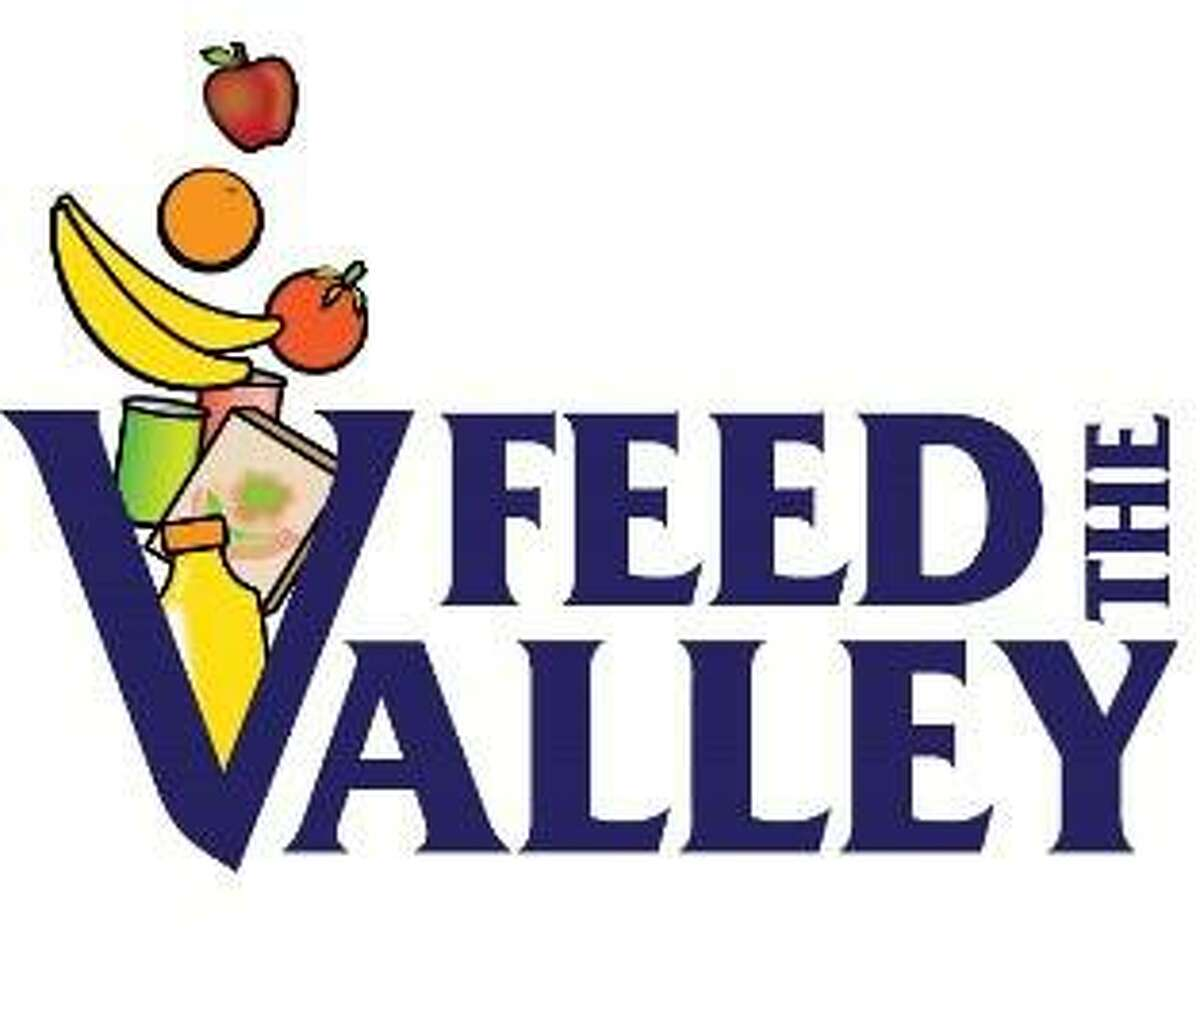 """Women United of the Valley United Way is introducing """"Feed the Valley,"""" a fundraiser designed to alleviate hunger in region while supporting restaurants and their employees as they recover from financial difficulties caused by the pandemic."""